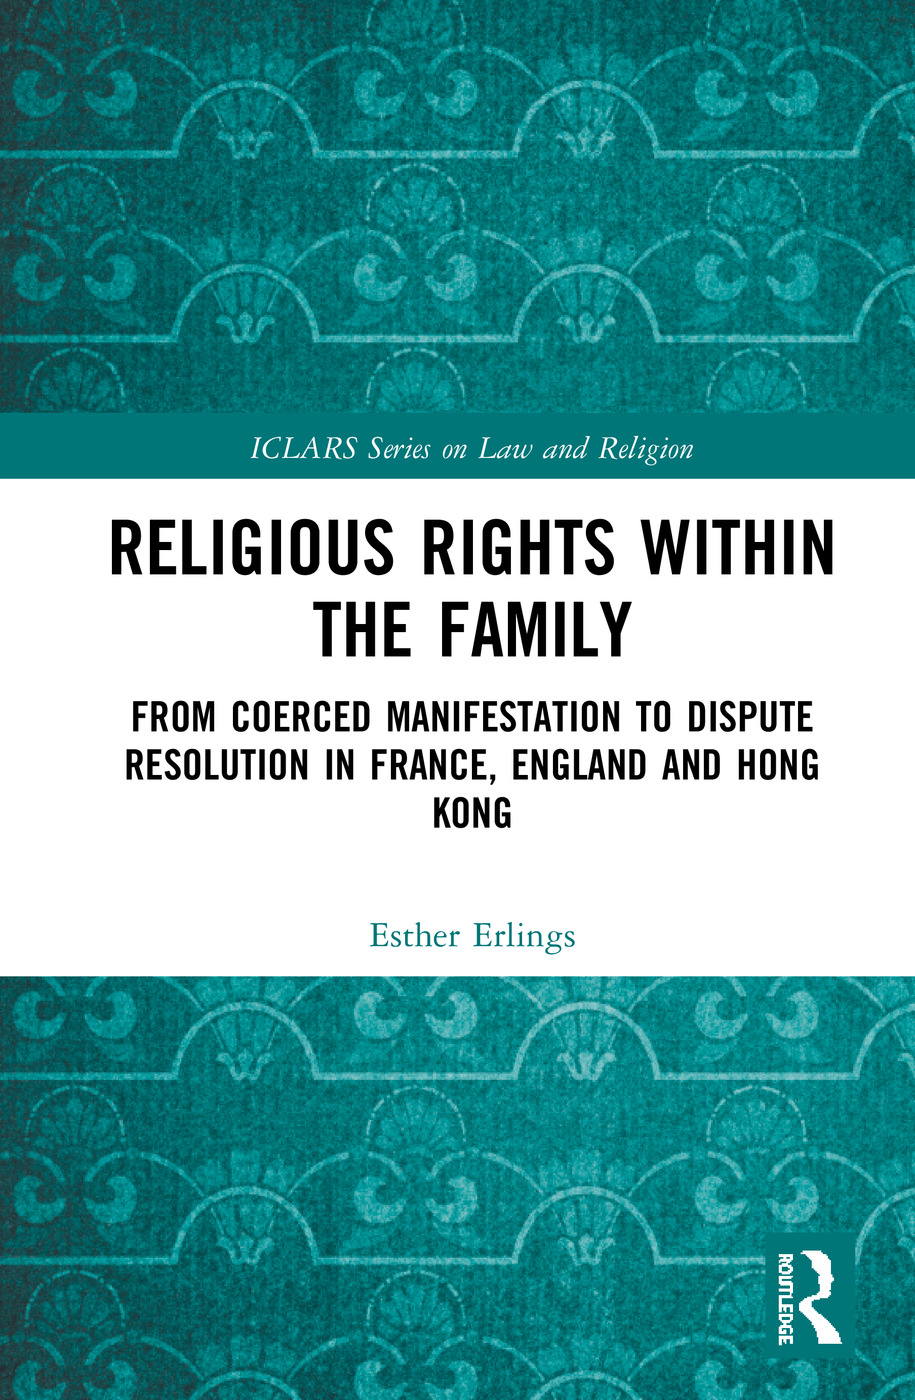 Religious Rights within the Family: From Coerced Manifestation to Dispute Resolution in France, England and Hong Kong book cover